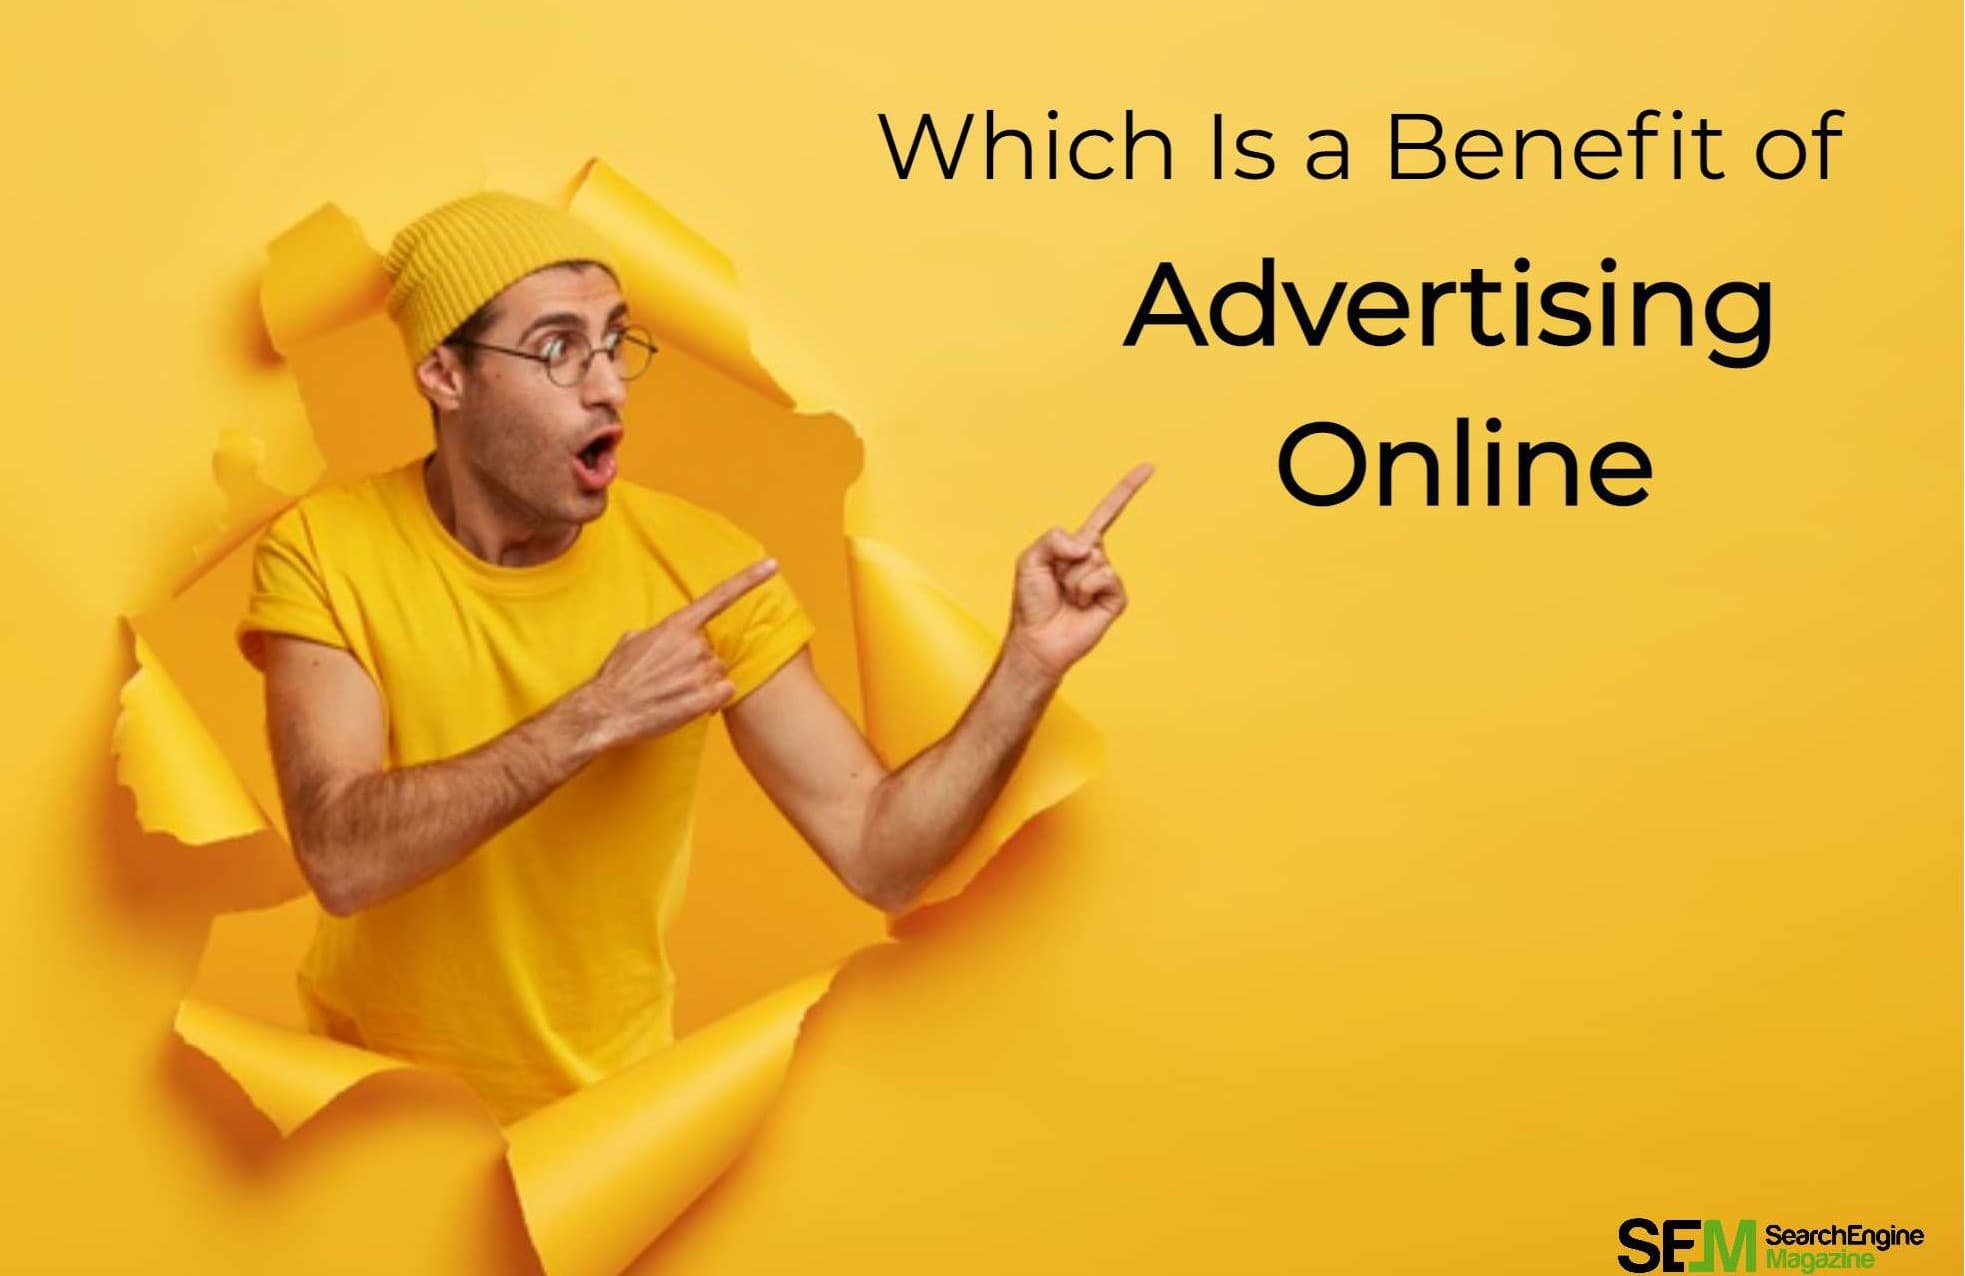 Which is a benefit of advertising online